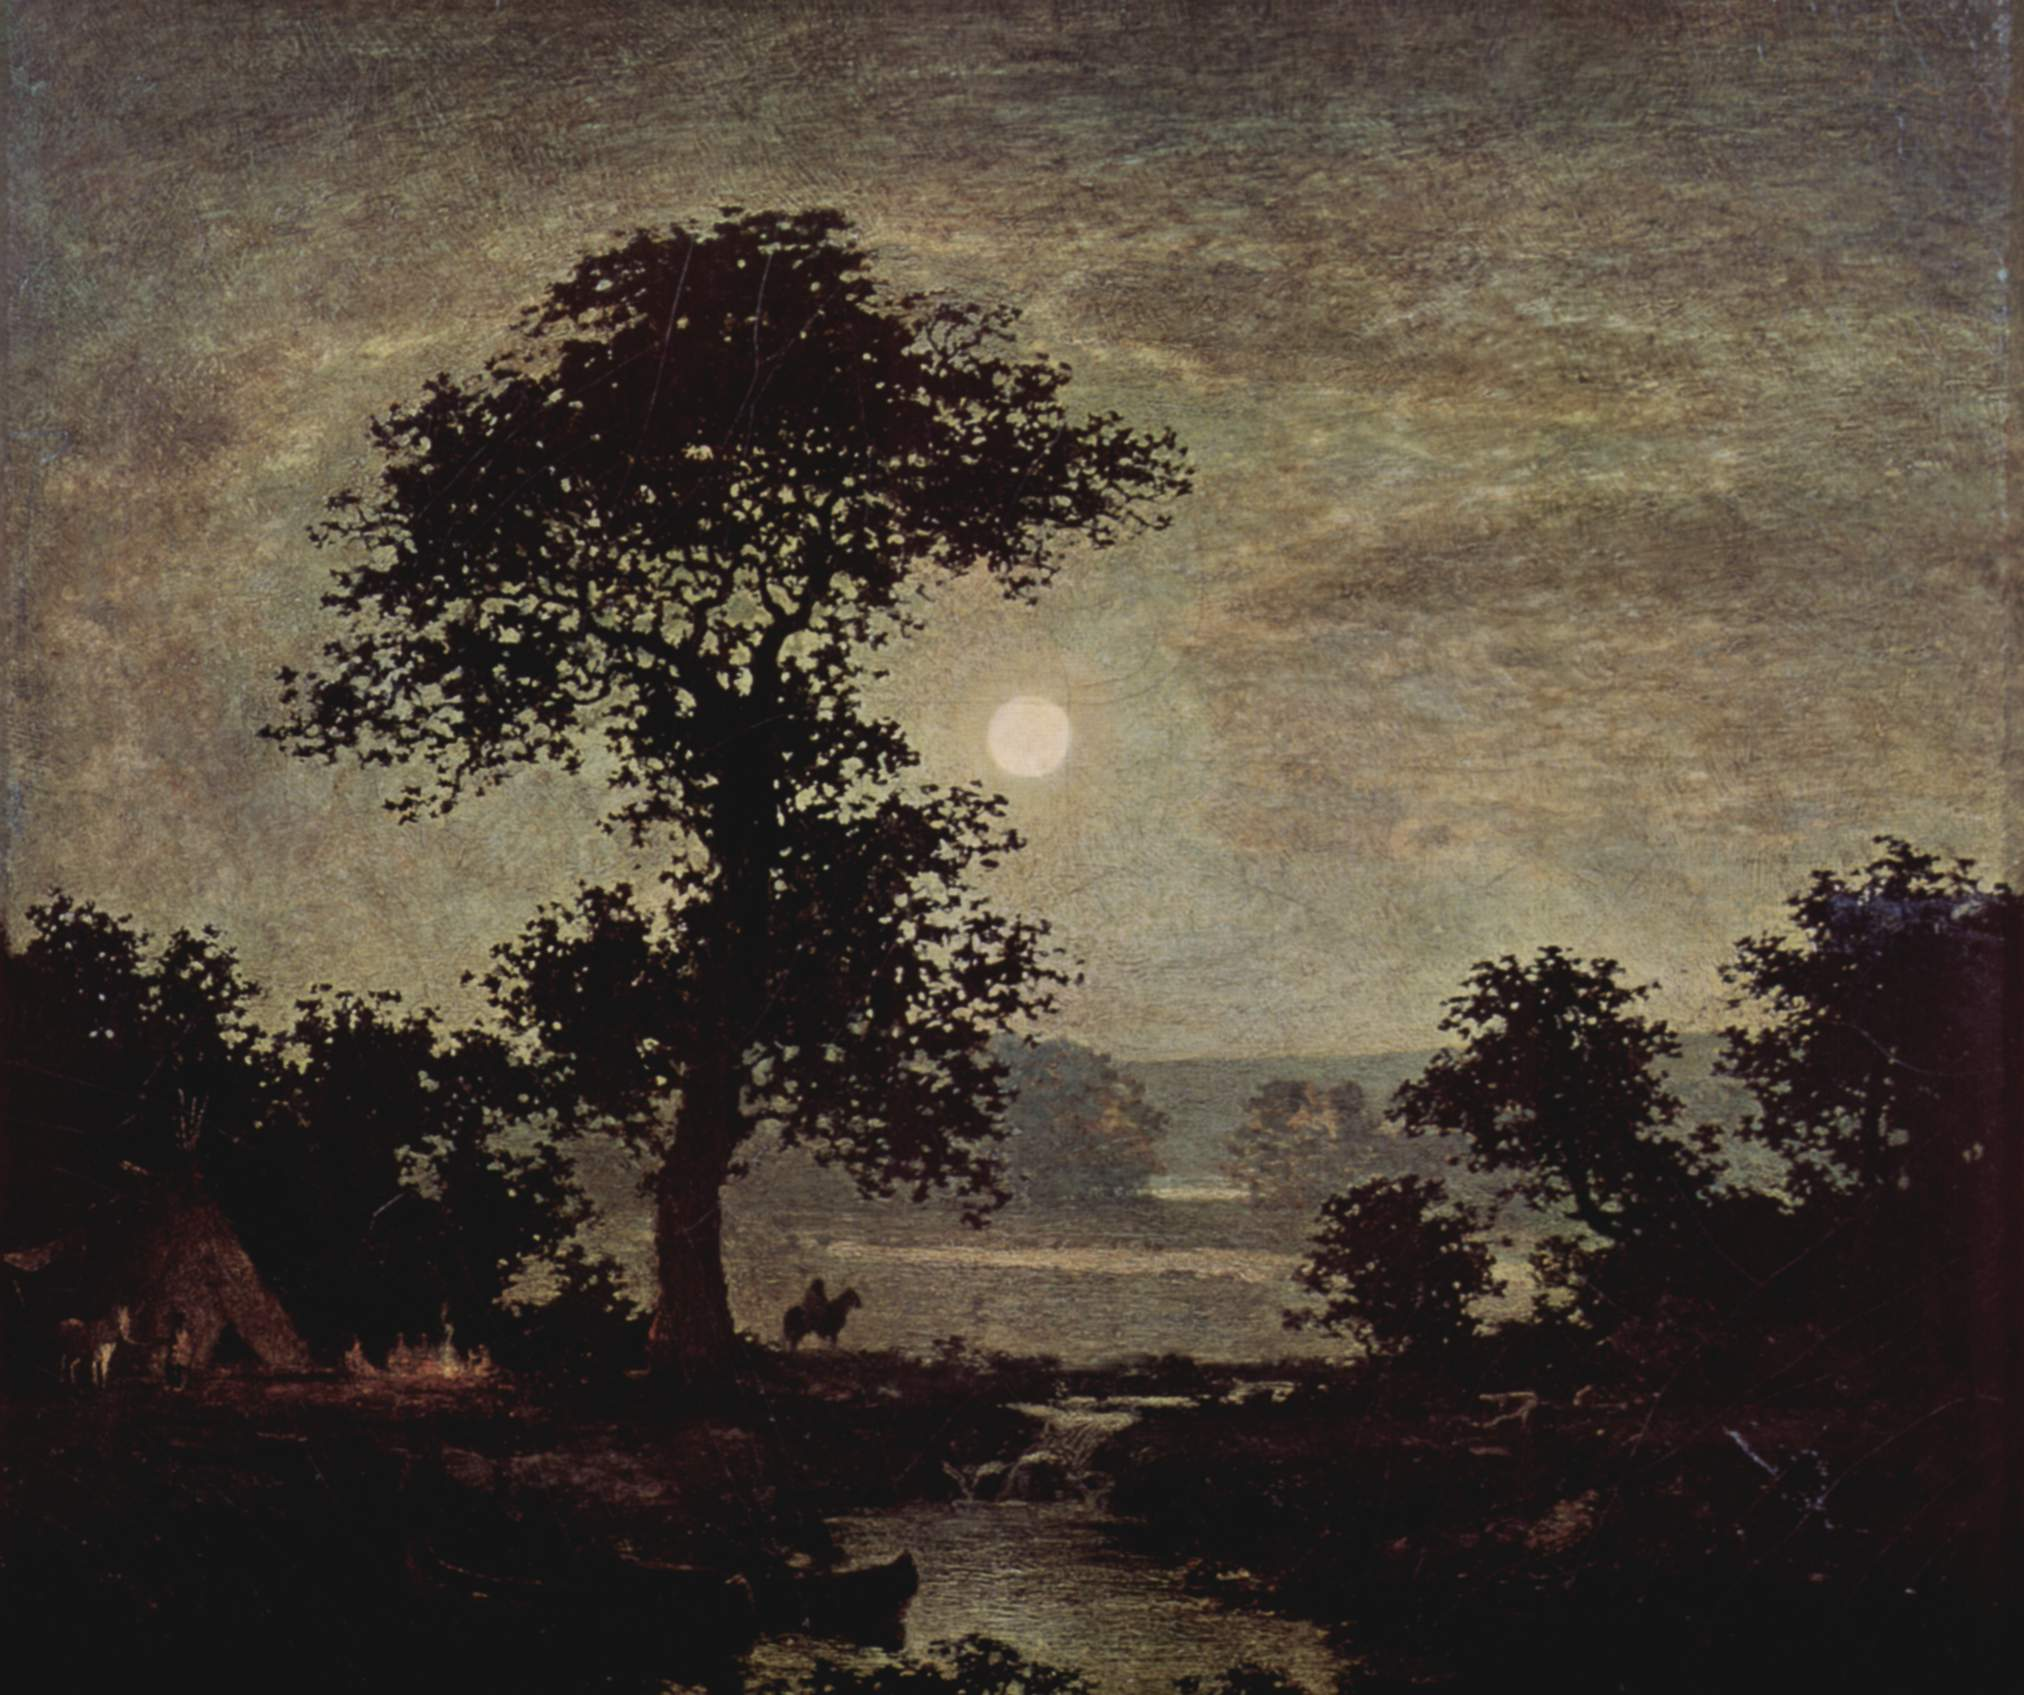 https://i0.wp.com/upload.wikimedia.org/wikipedia/commons/2/27/Ralph_Albert_Blakelock_001.jpg